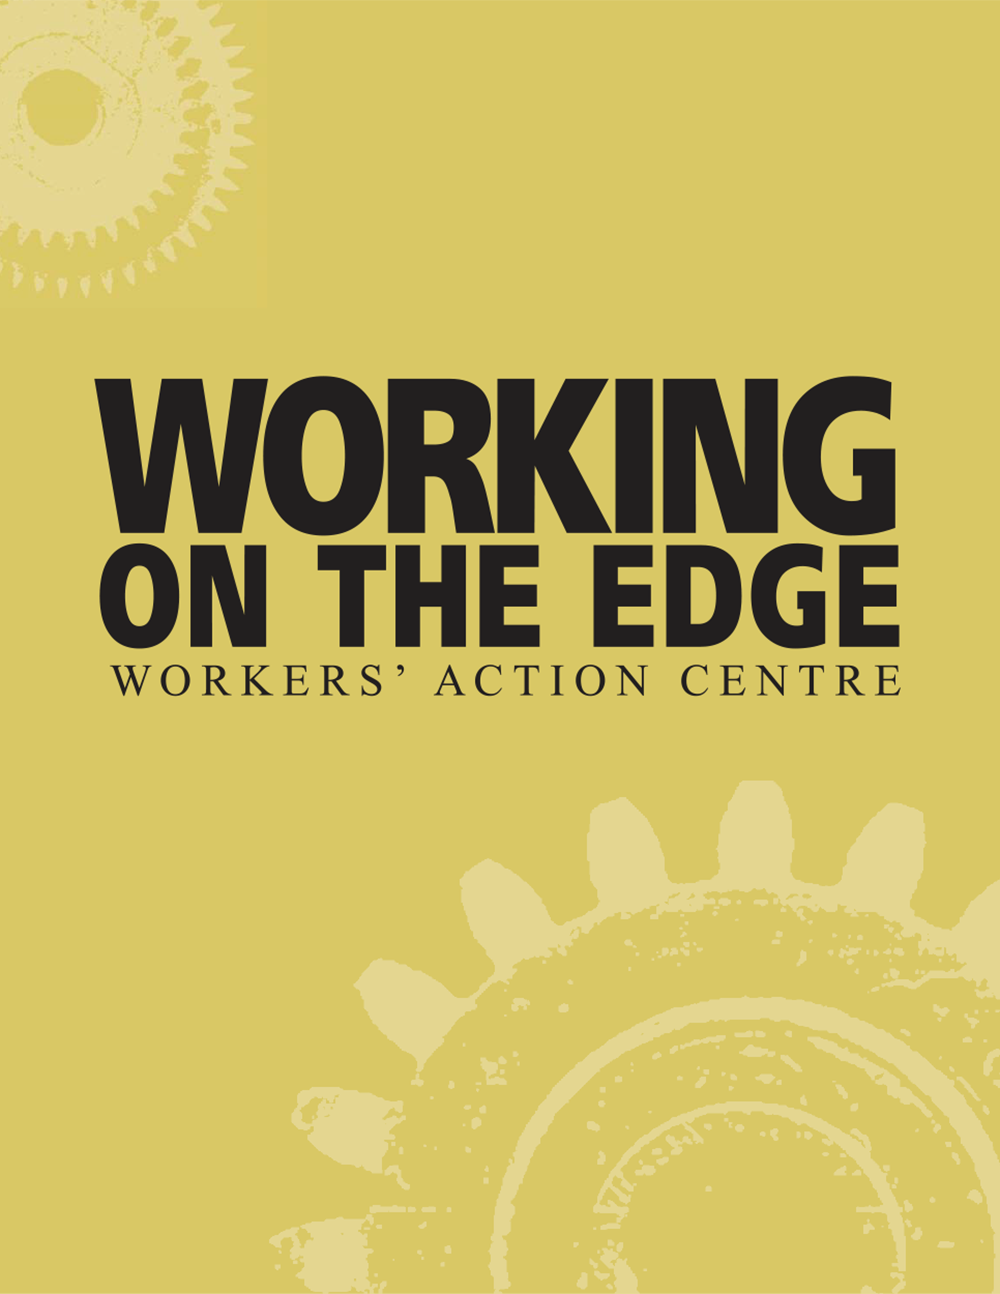 Report: Working on the Edge